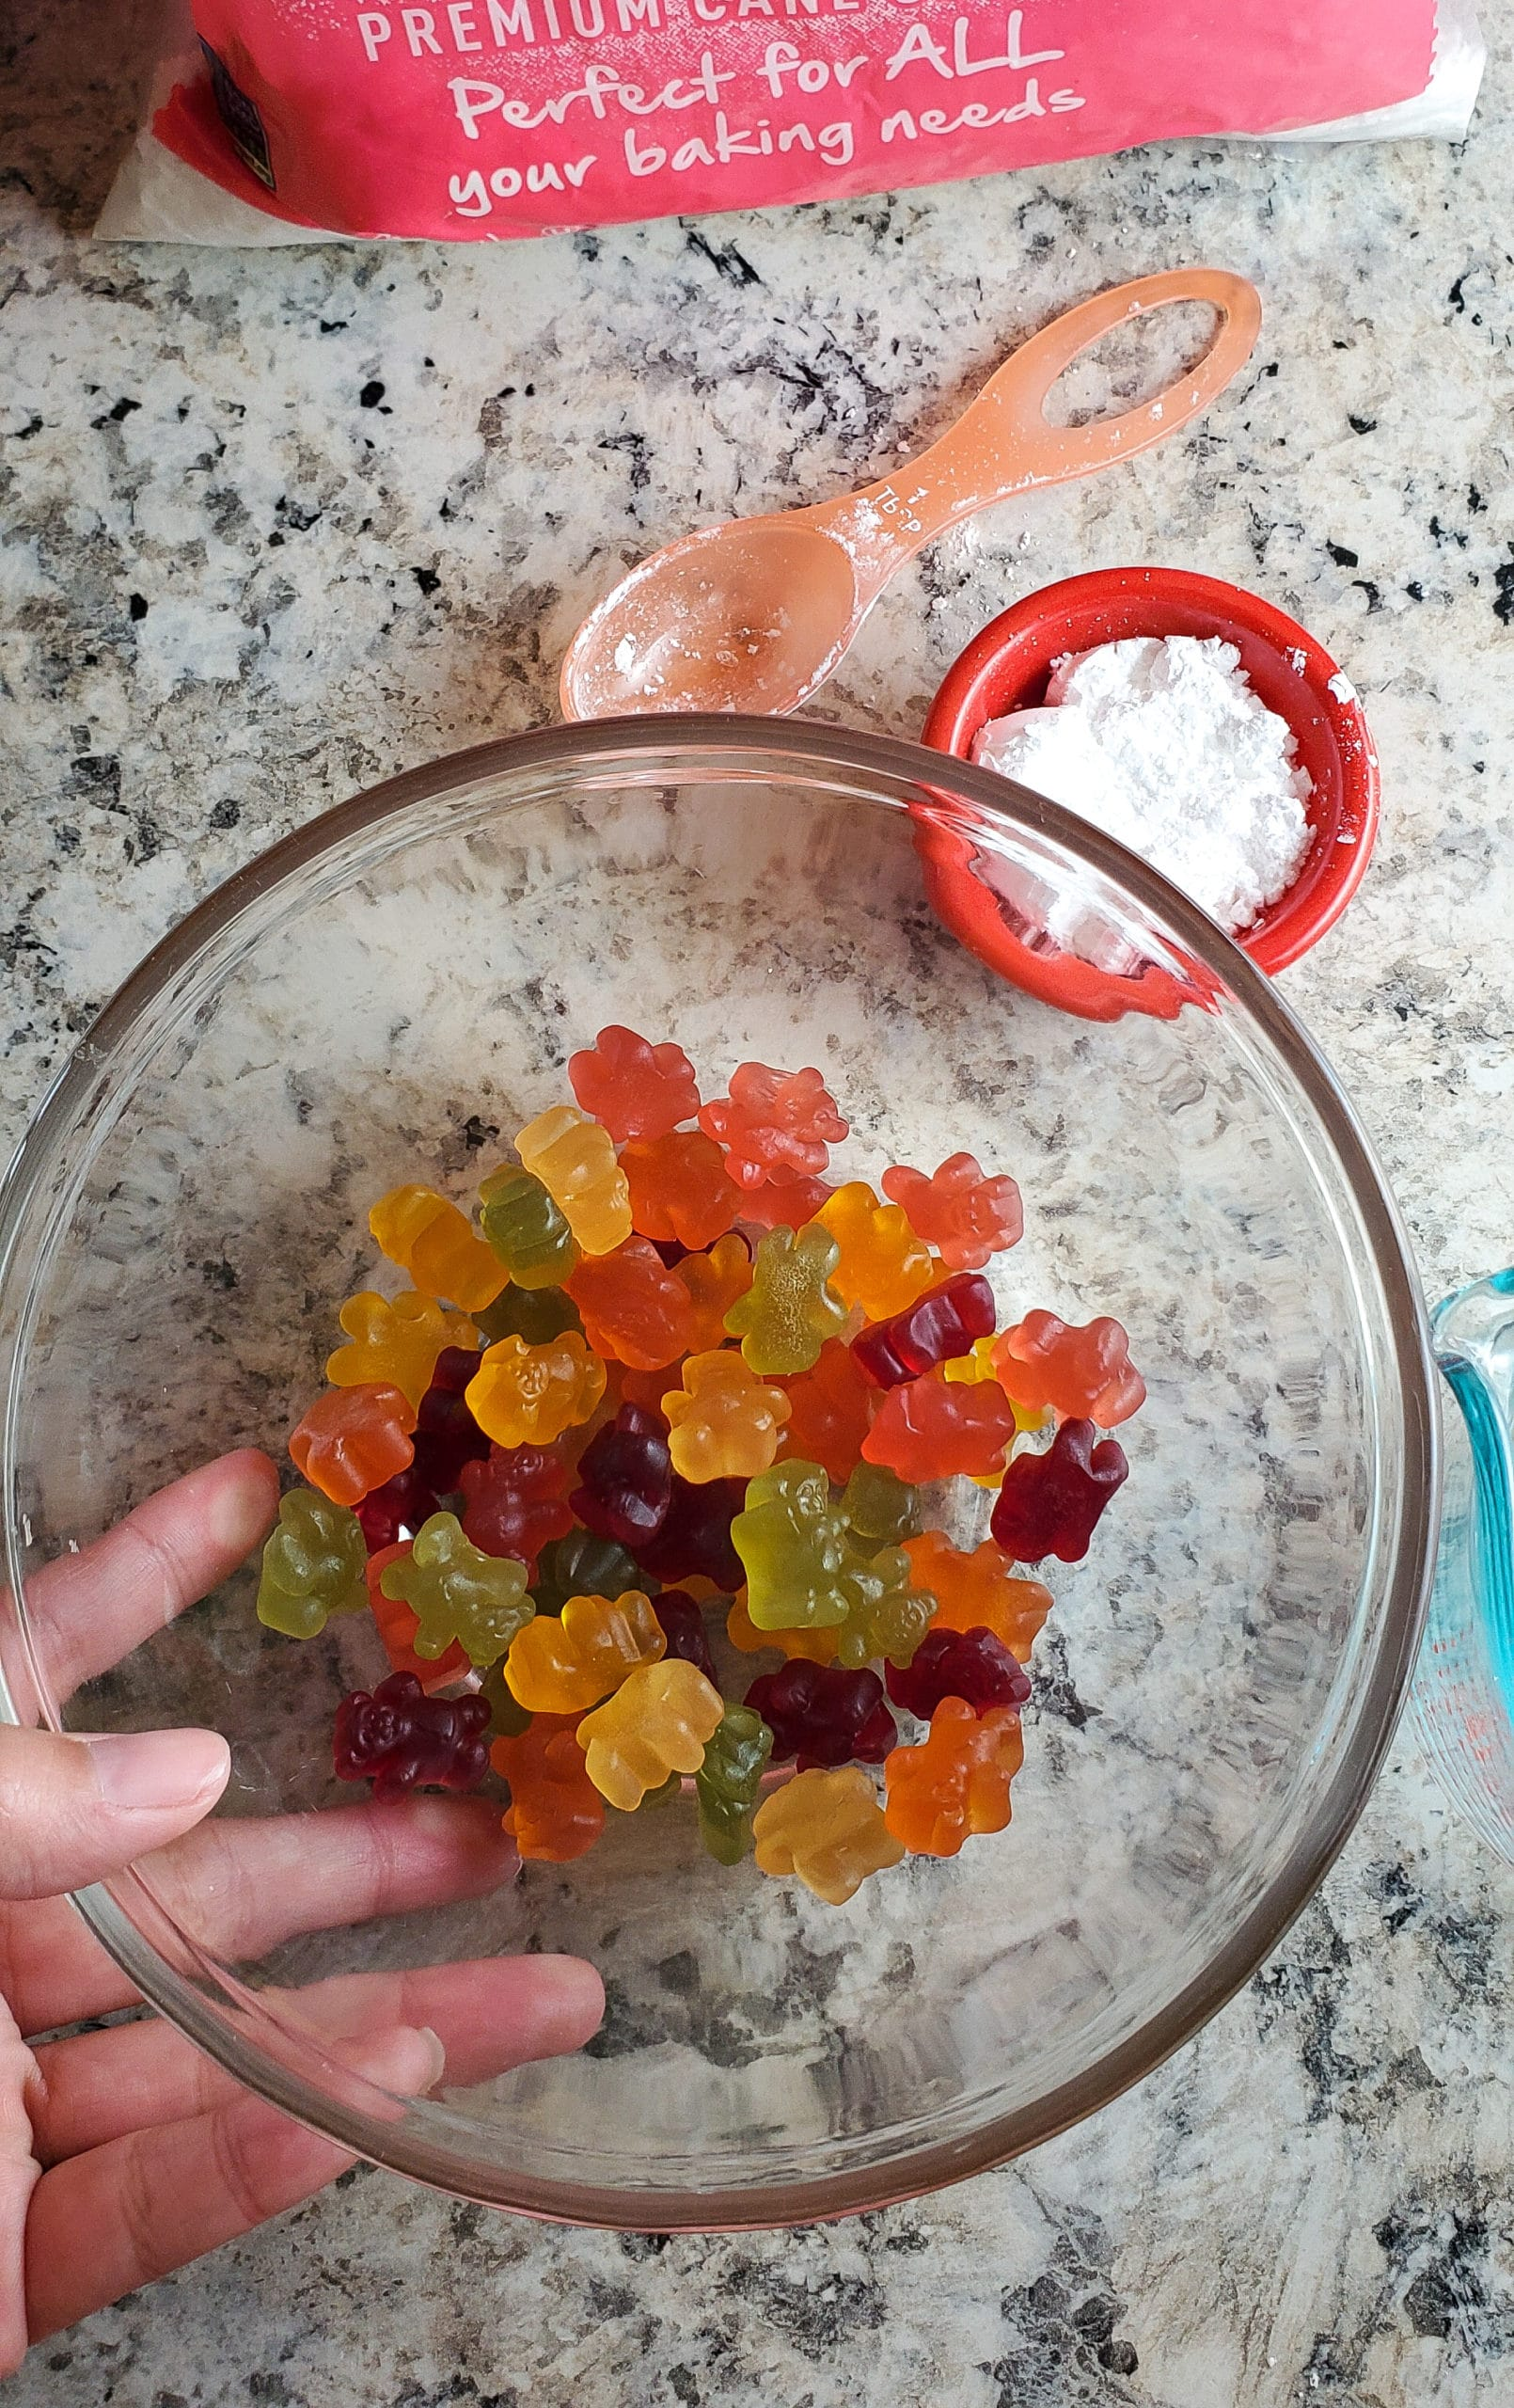 Gummy Bear Slime In Bowl. Get ready for loveable bear hugs, digital culture references, life lessons, and Gummy Bear Slime! Stack the bears up, squish them down and make this adventurous slime that you can actually eat!